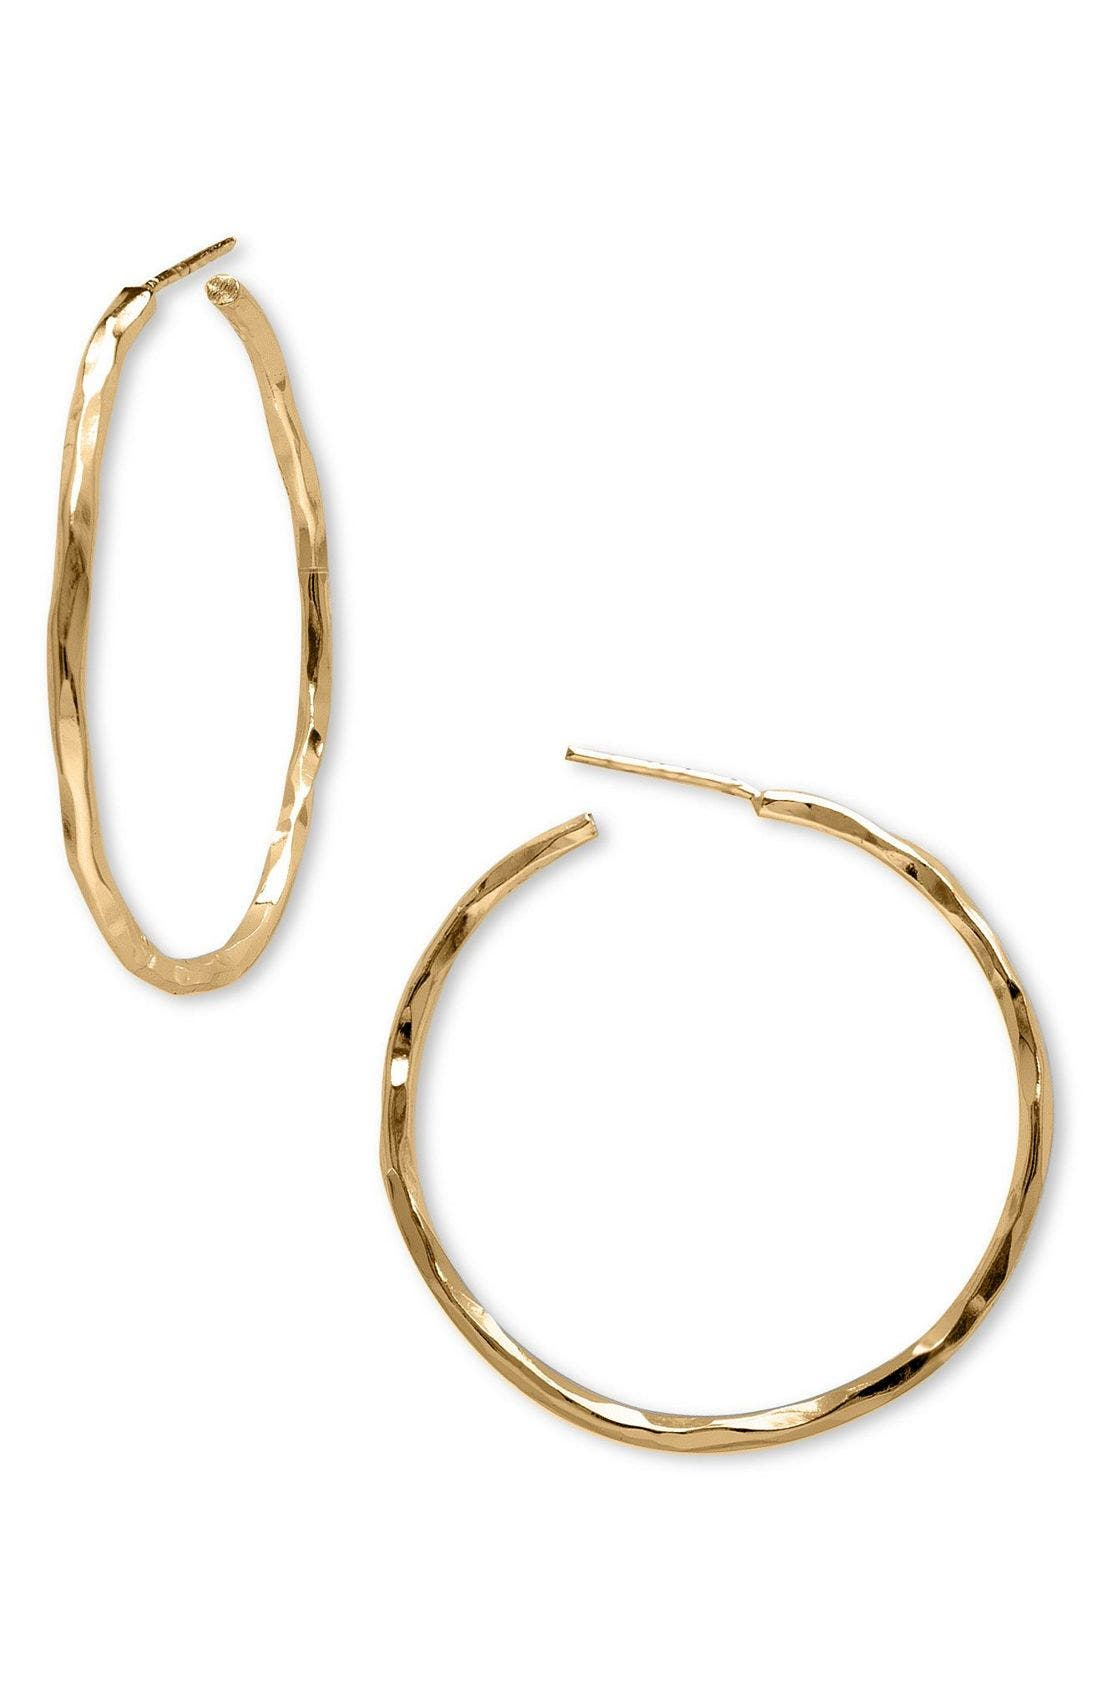 Medium Hammered Hoop Earrings,                         Main,                         color, GOLD